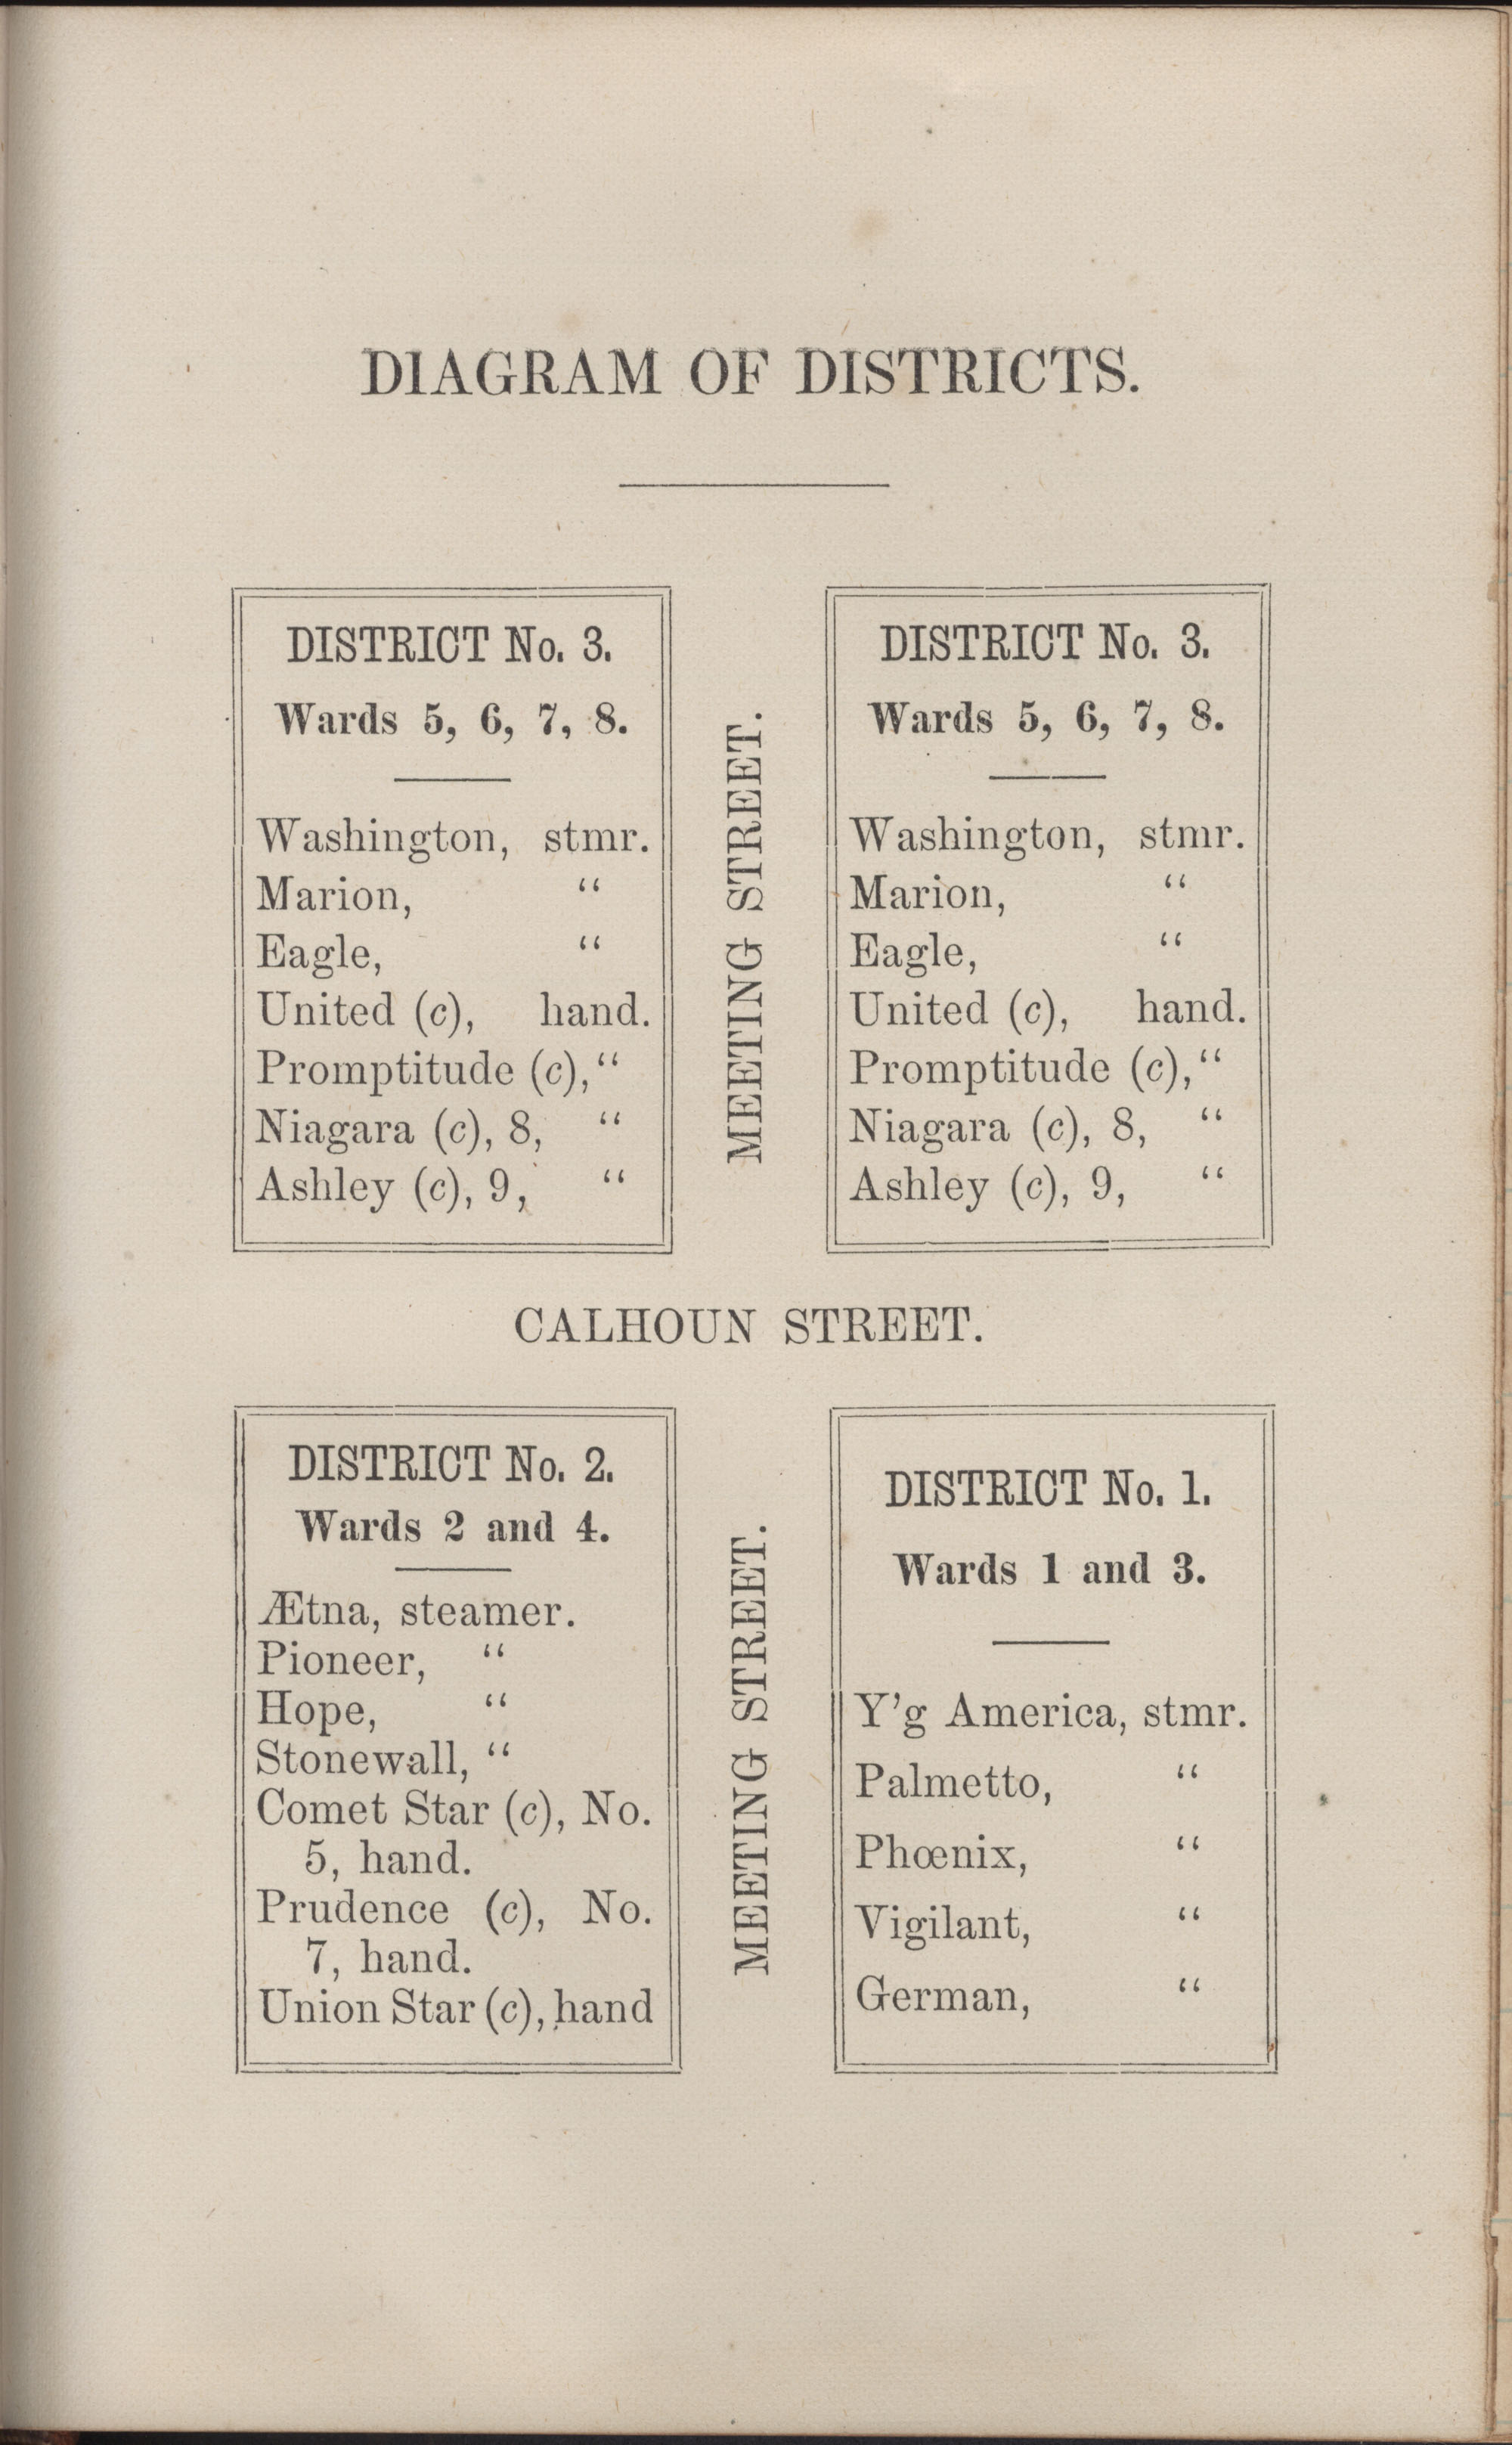 Annual Report of the Chief of the Fire Department of the City of Charleston, page 449